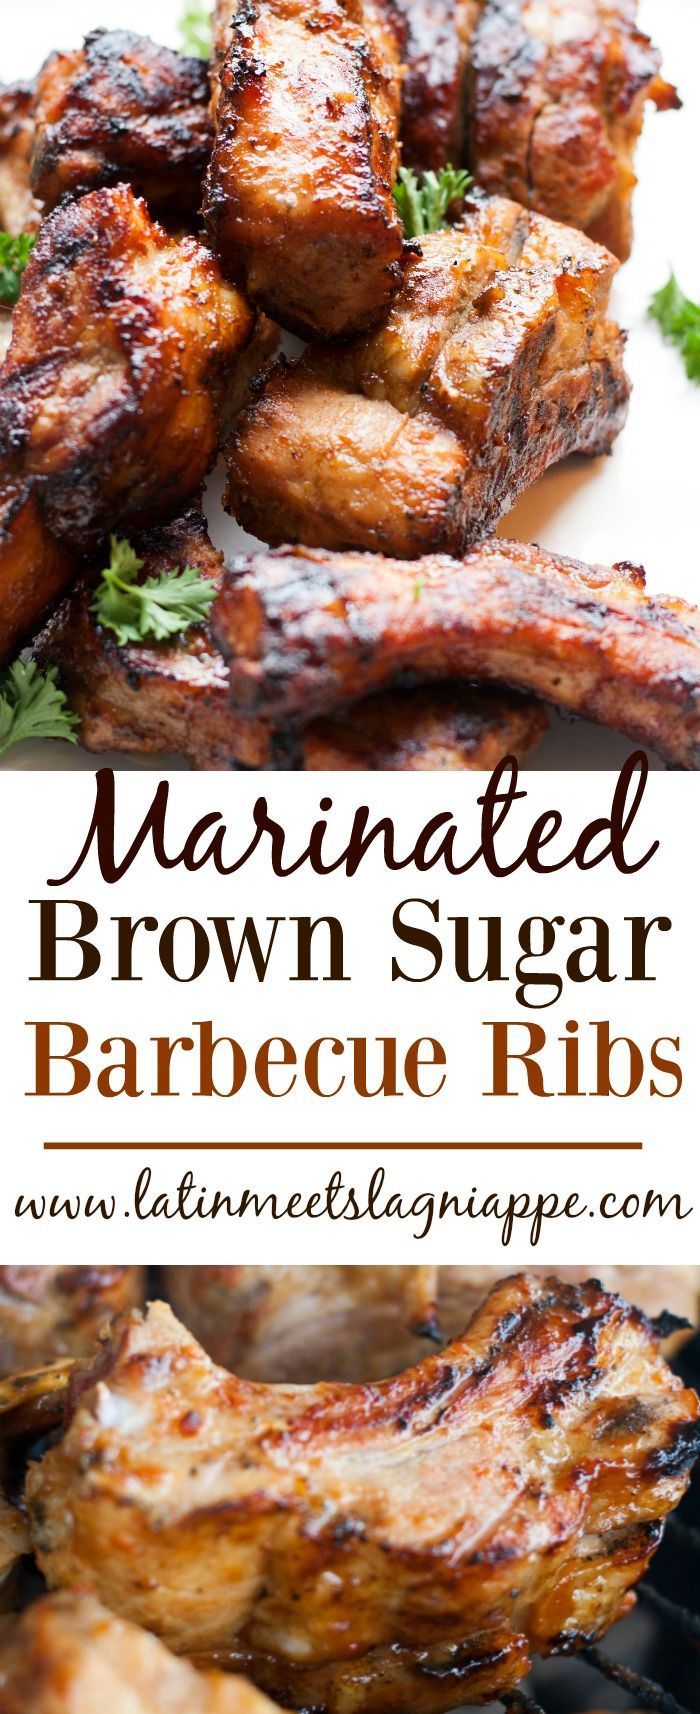 Bbq pork rib marinade recipes